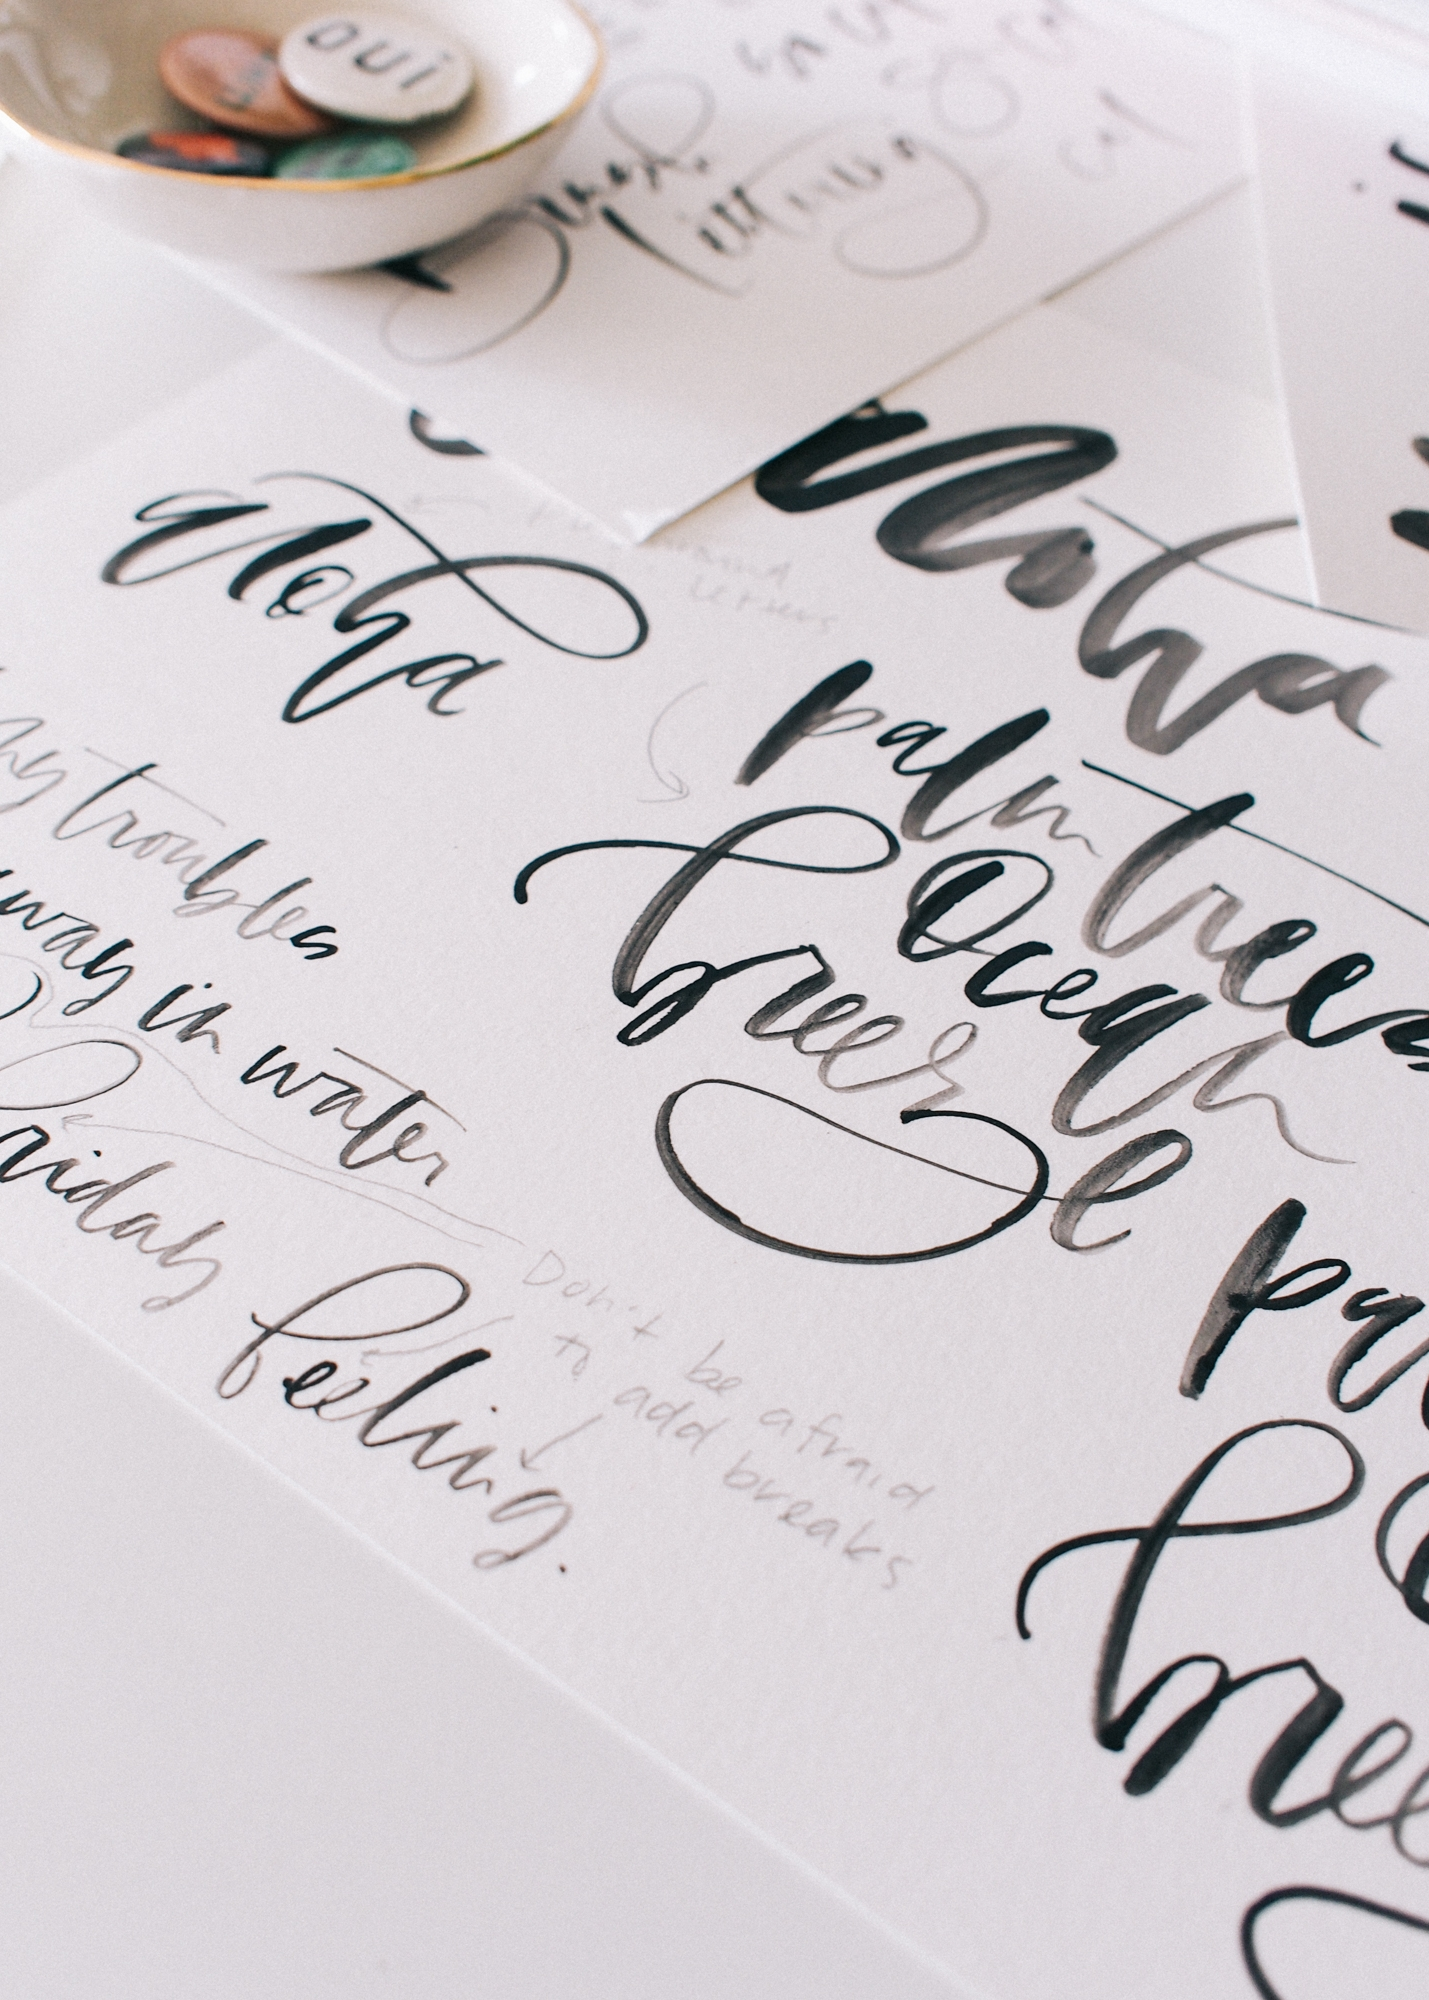 Lettering samples for a guide to hand lettering | A Fabulous Fete